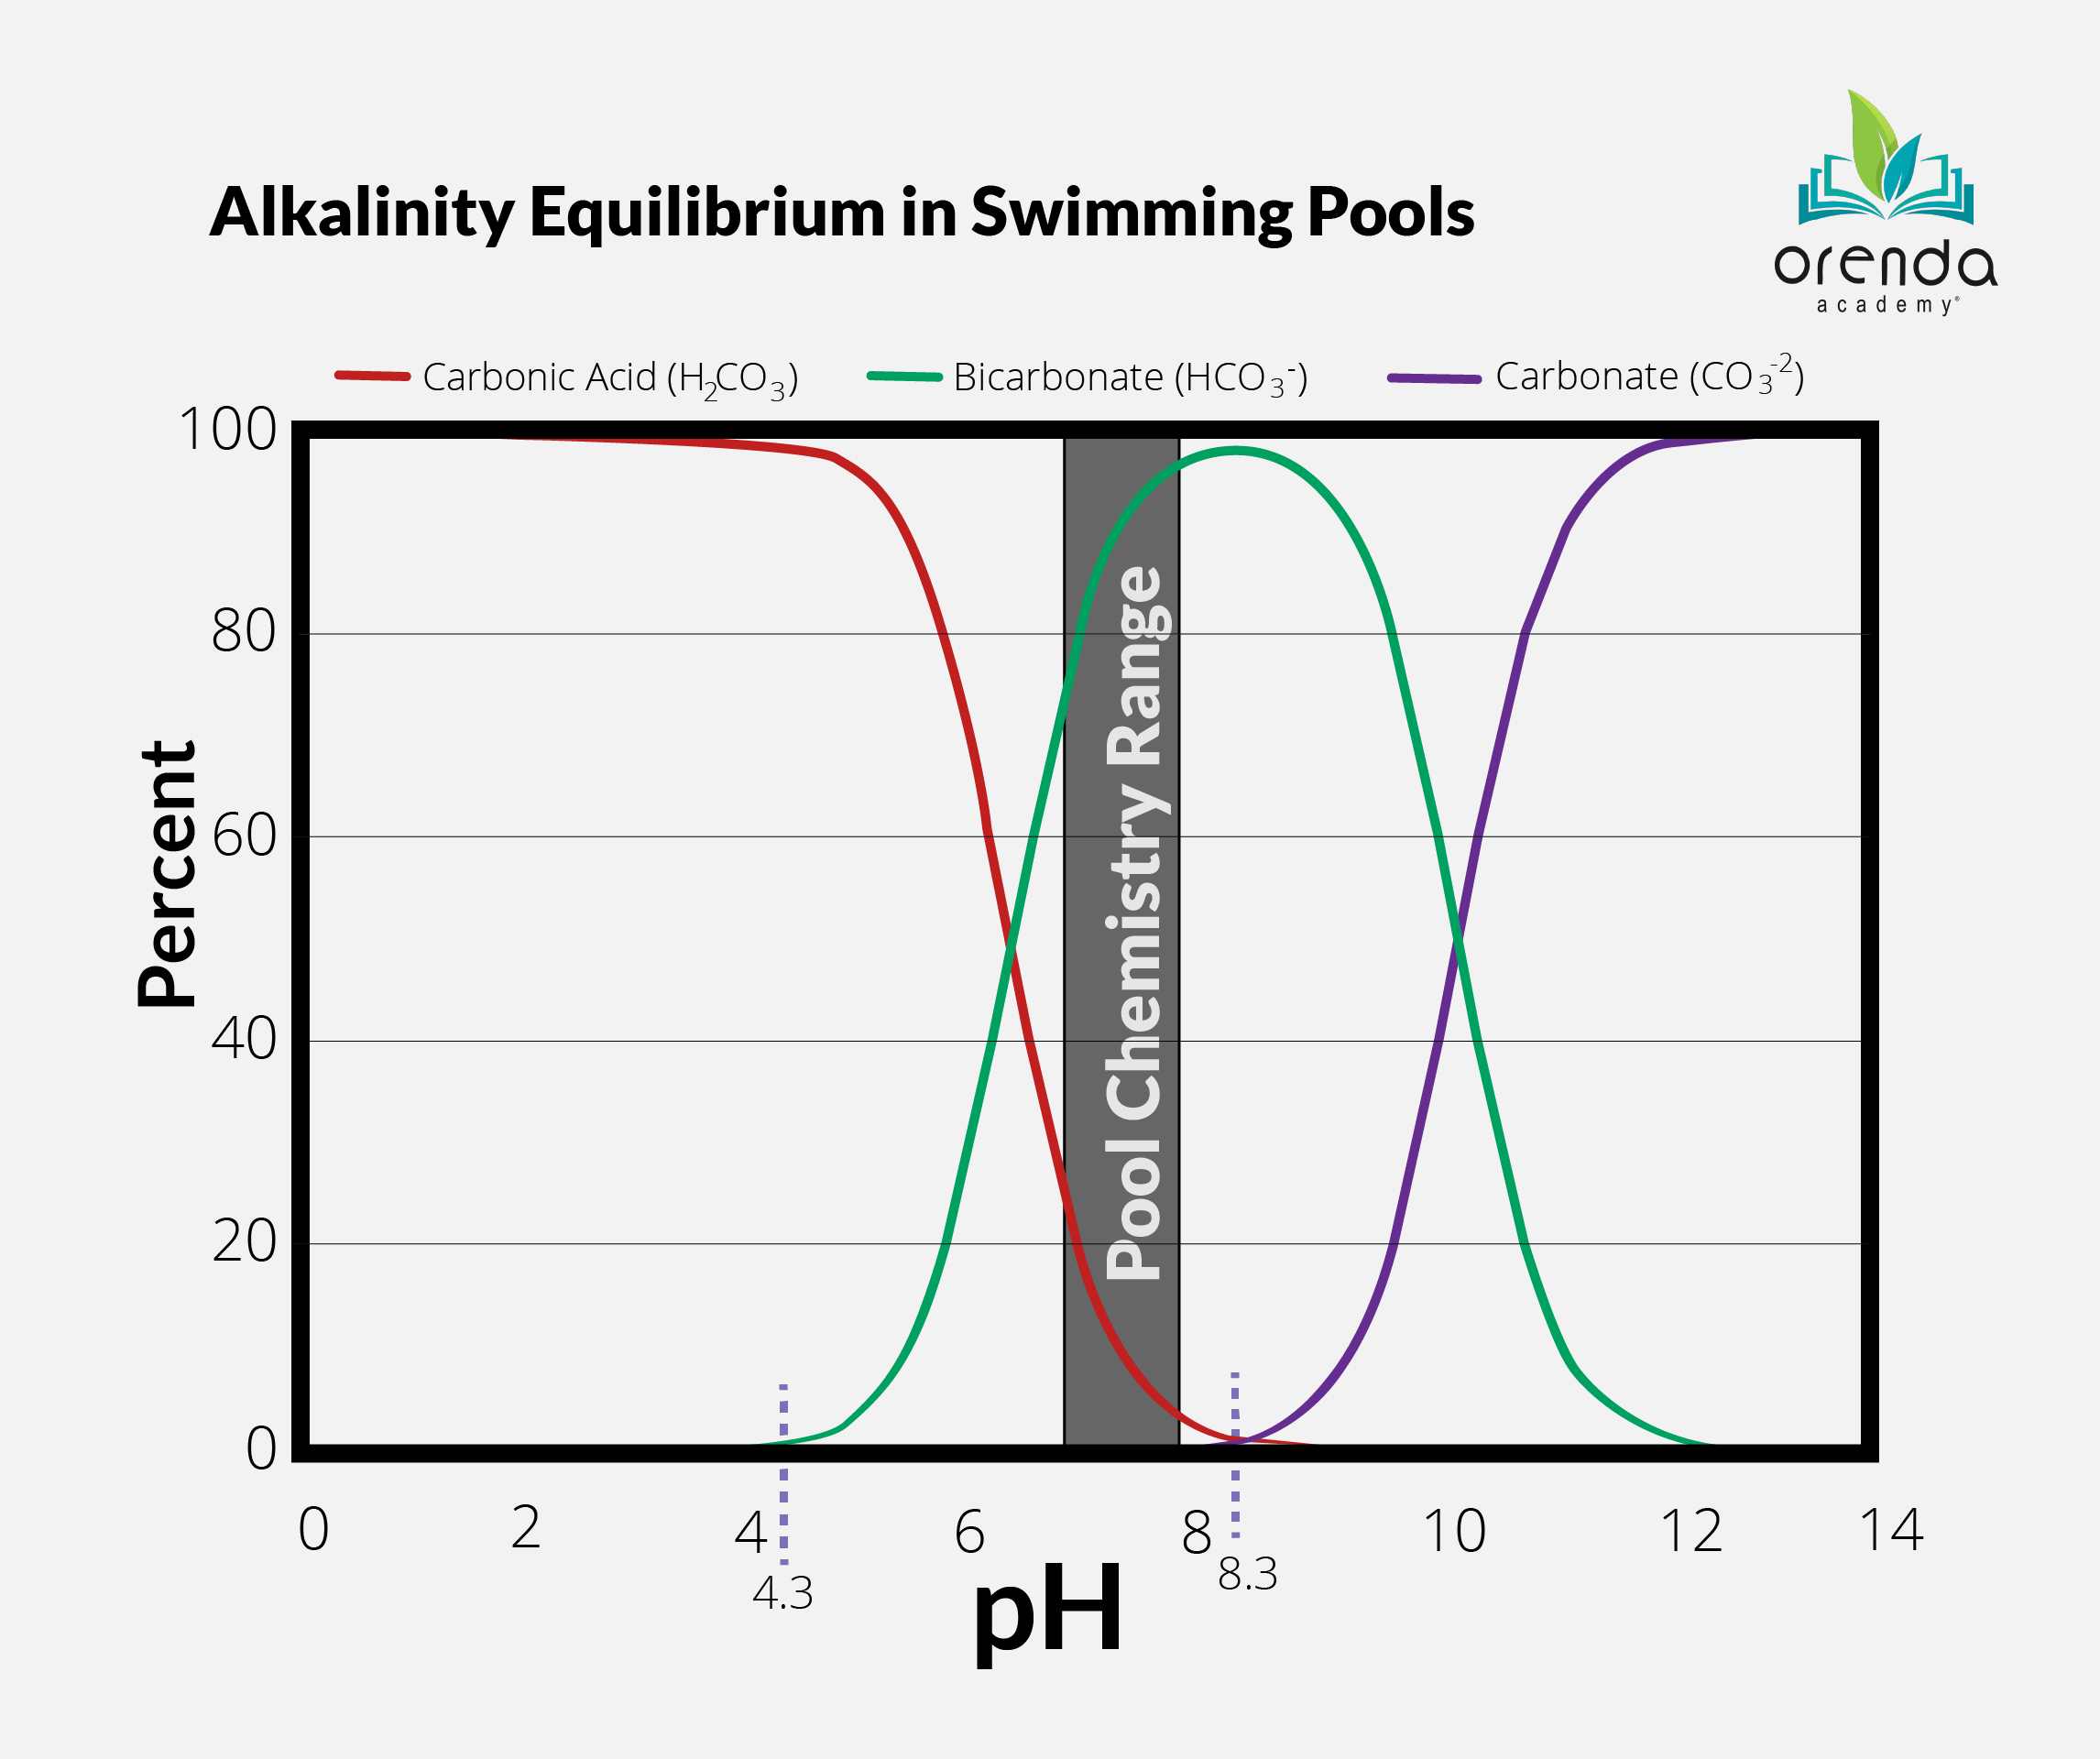 Alkalinity Equilibrium, types of alkalinity, carbonate alkalinity, bicarbonate alkalinity, carbonic acid, pH and alkalinity